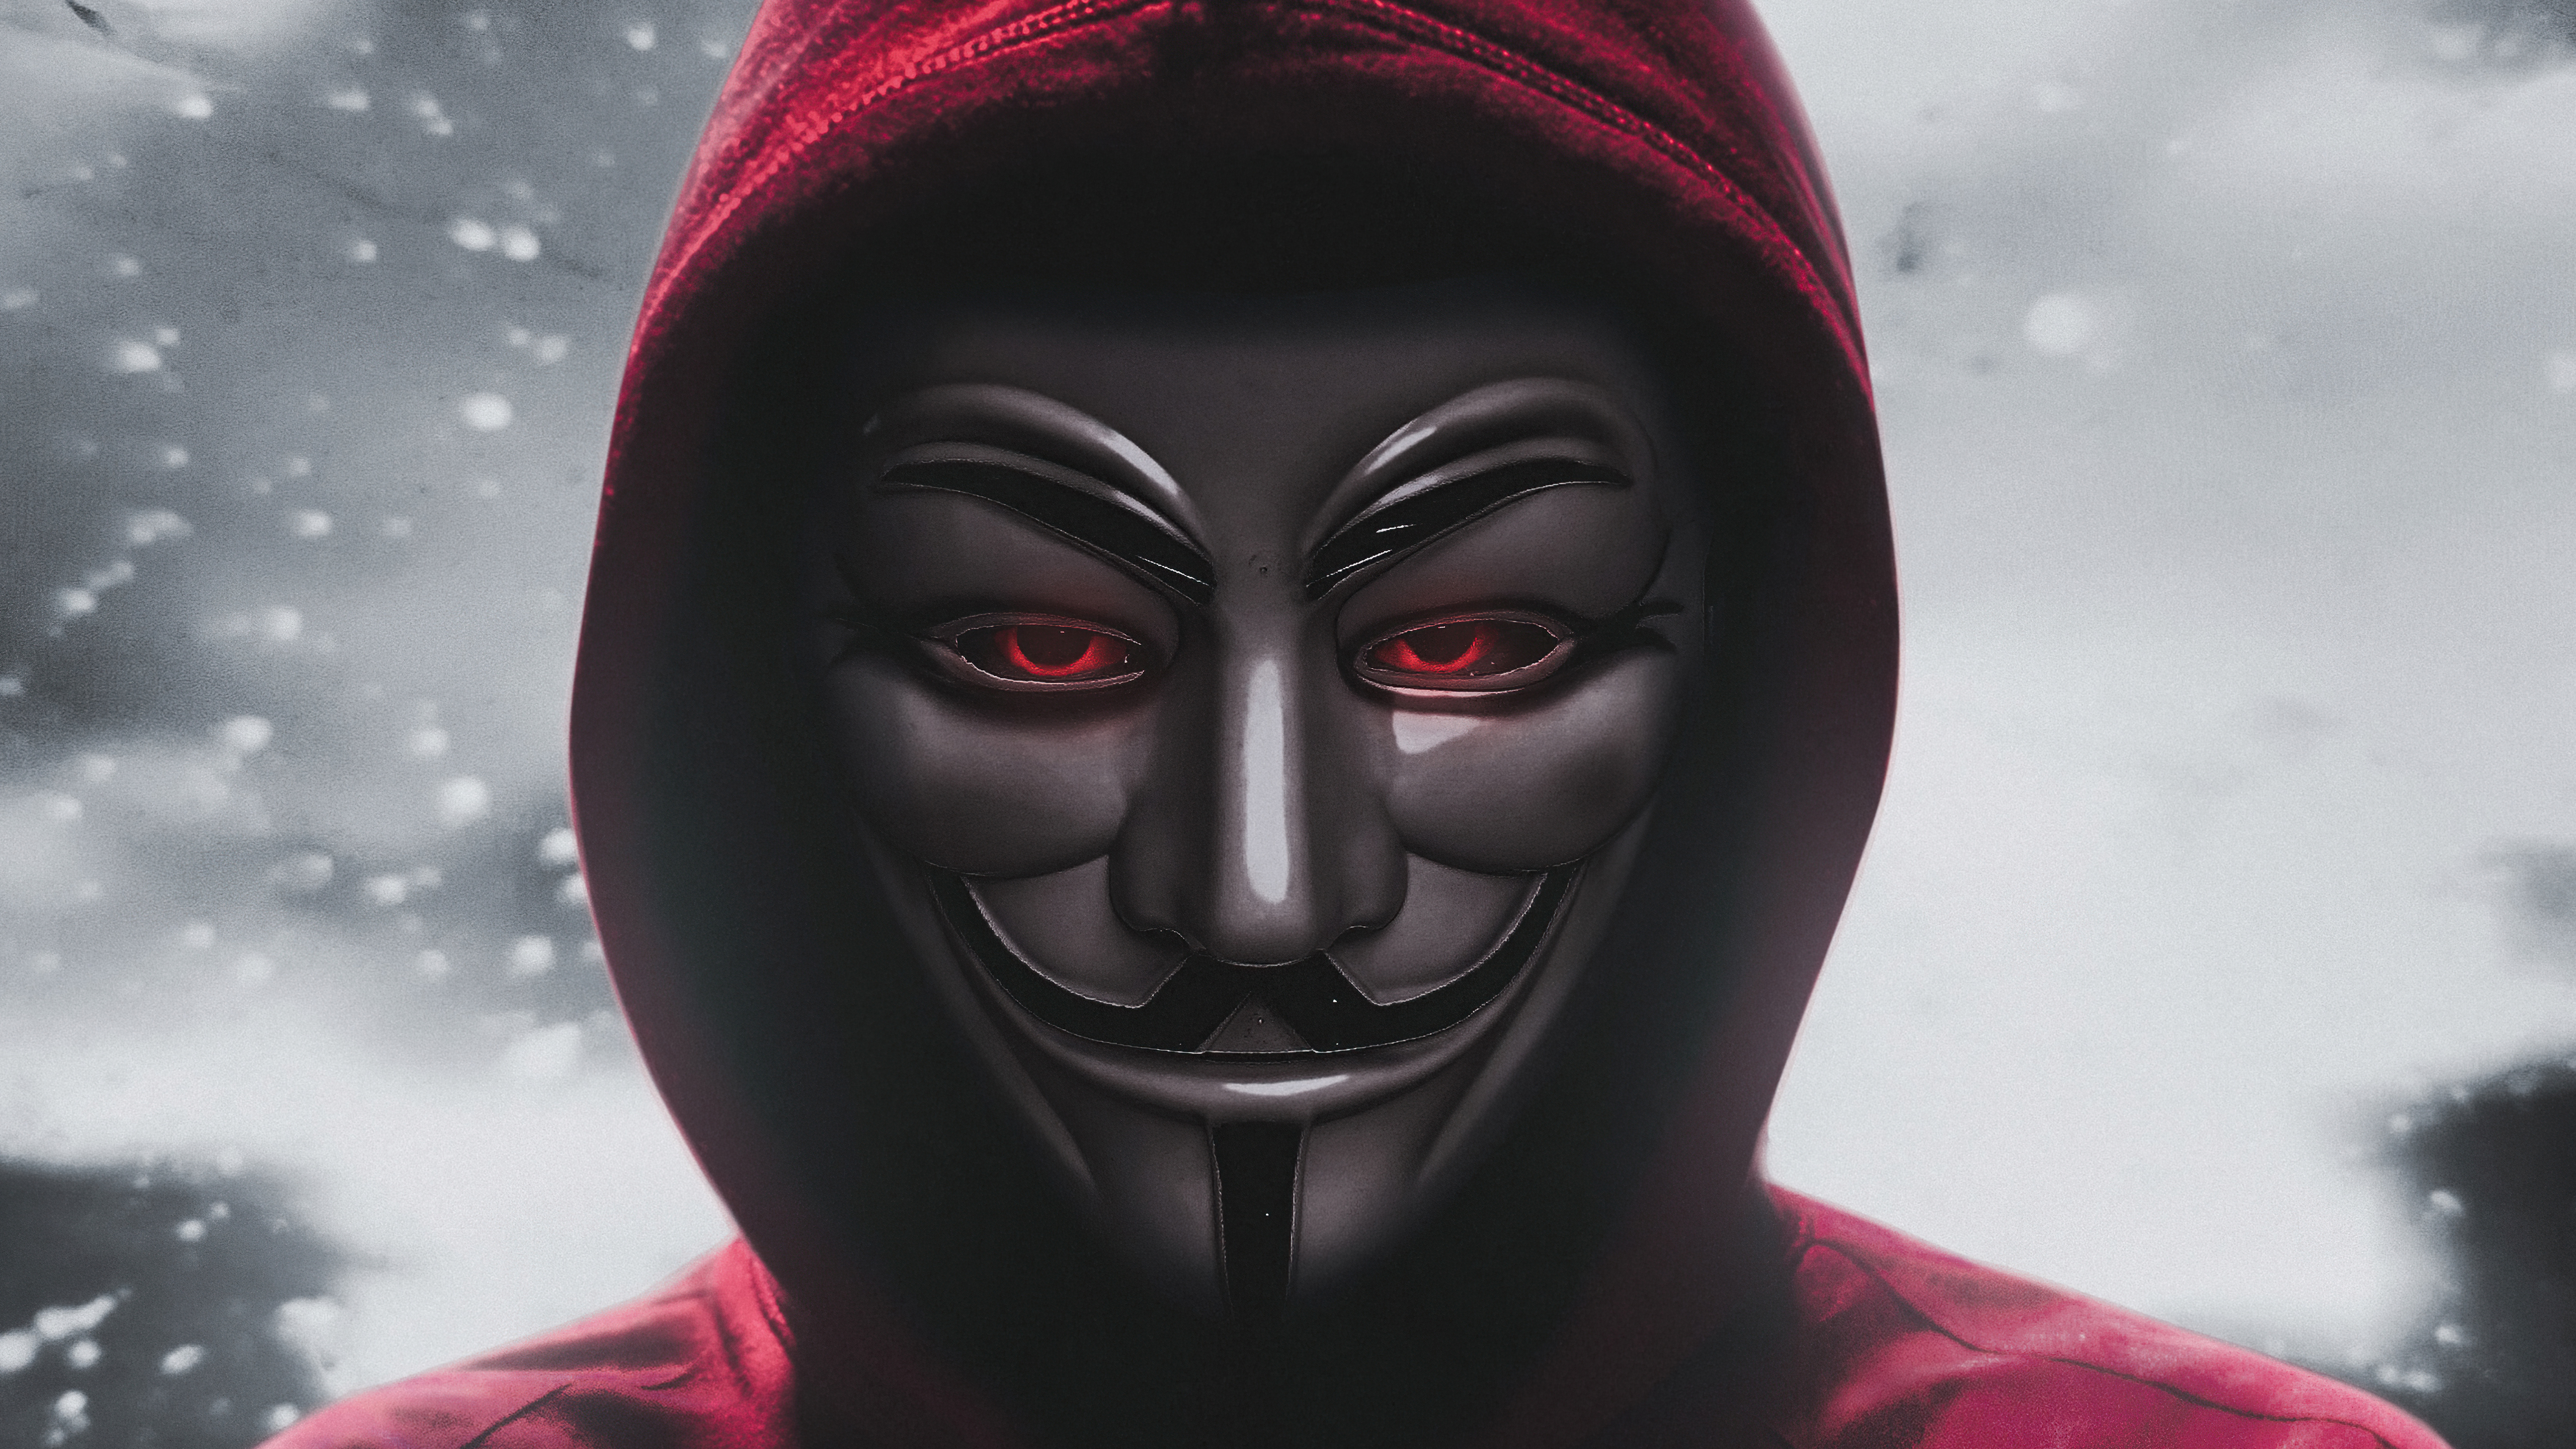 anonymus eyes red hoodie 4k 1618131491 - Anonymus Eyes Red Hoodie 4k - Anonymus Eyes Red Hoodie 4k wallpapers